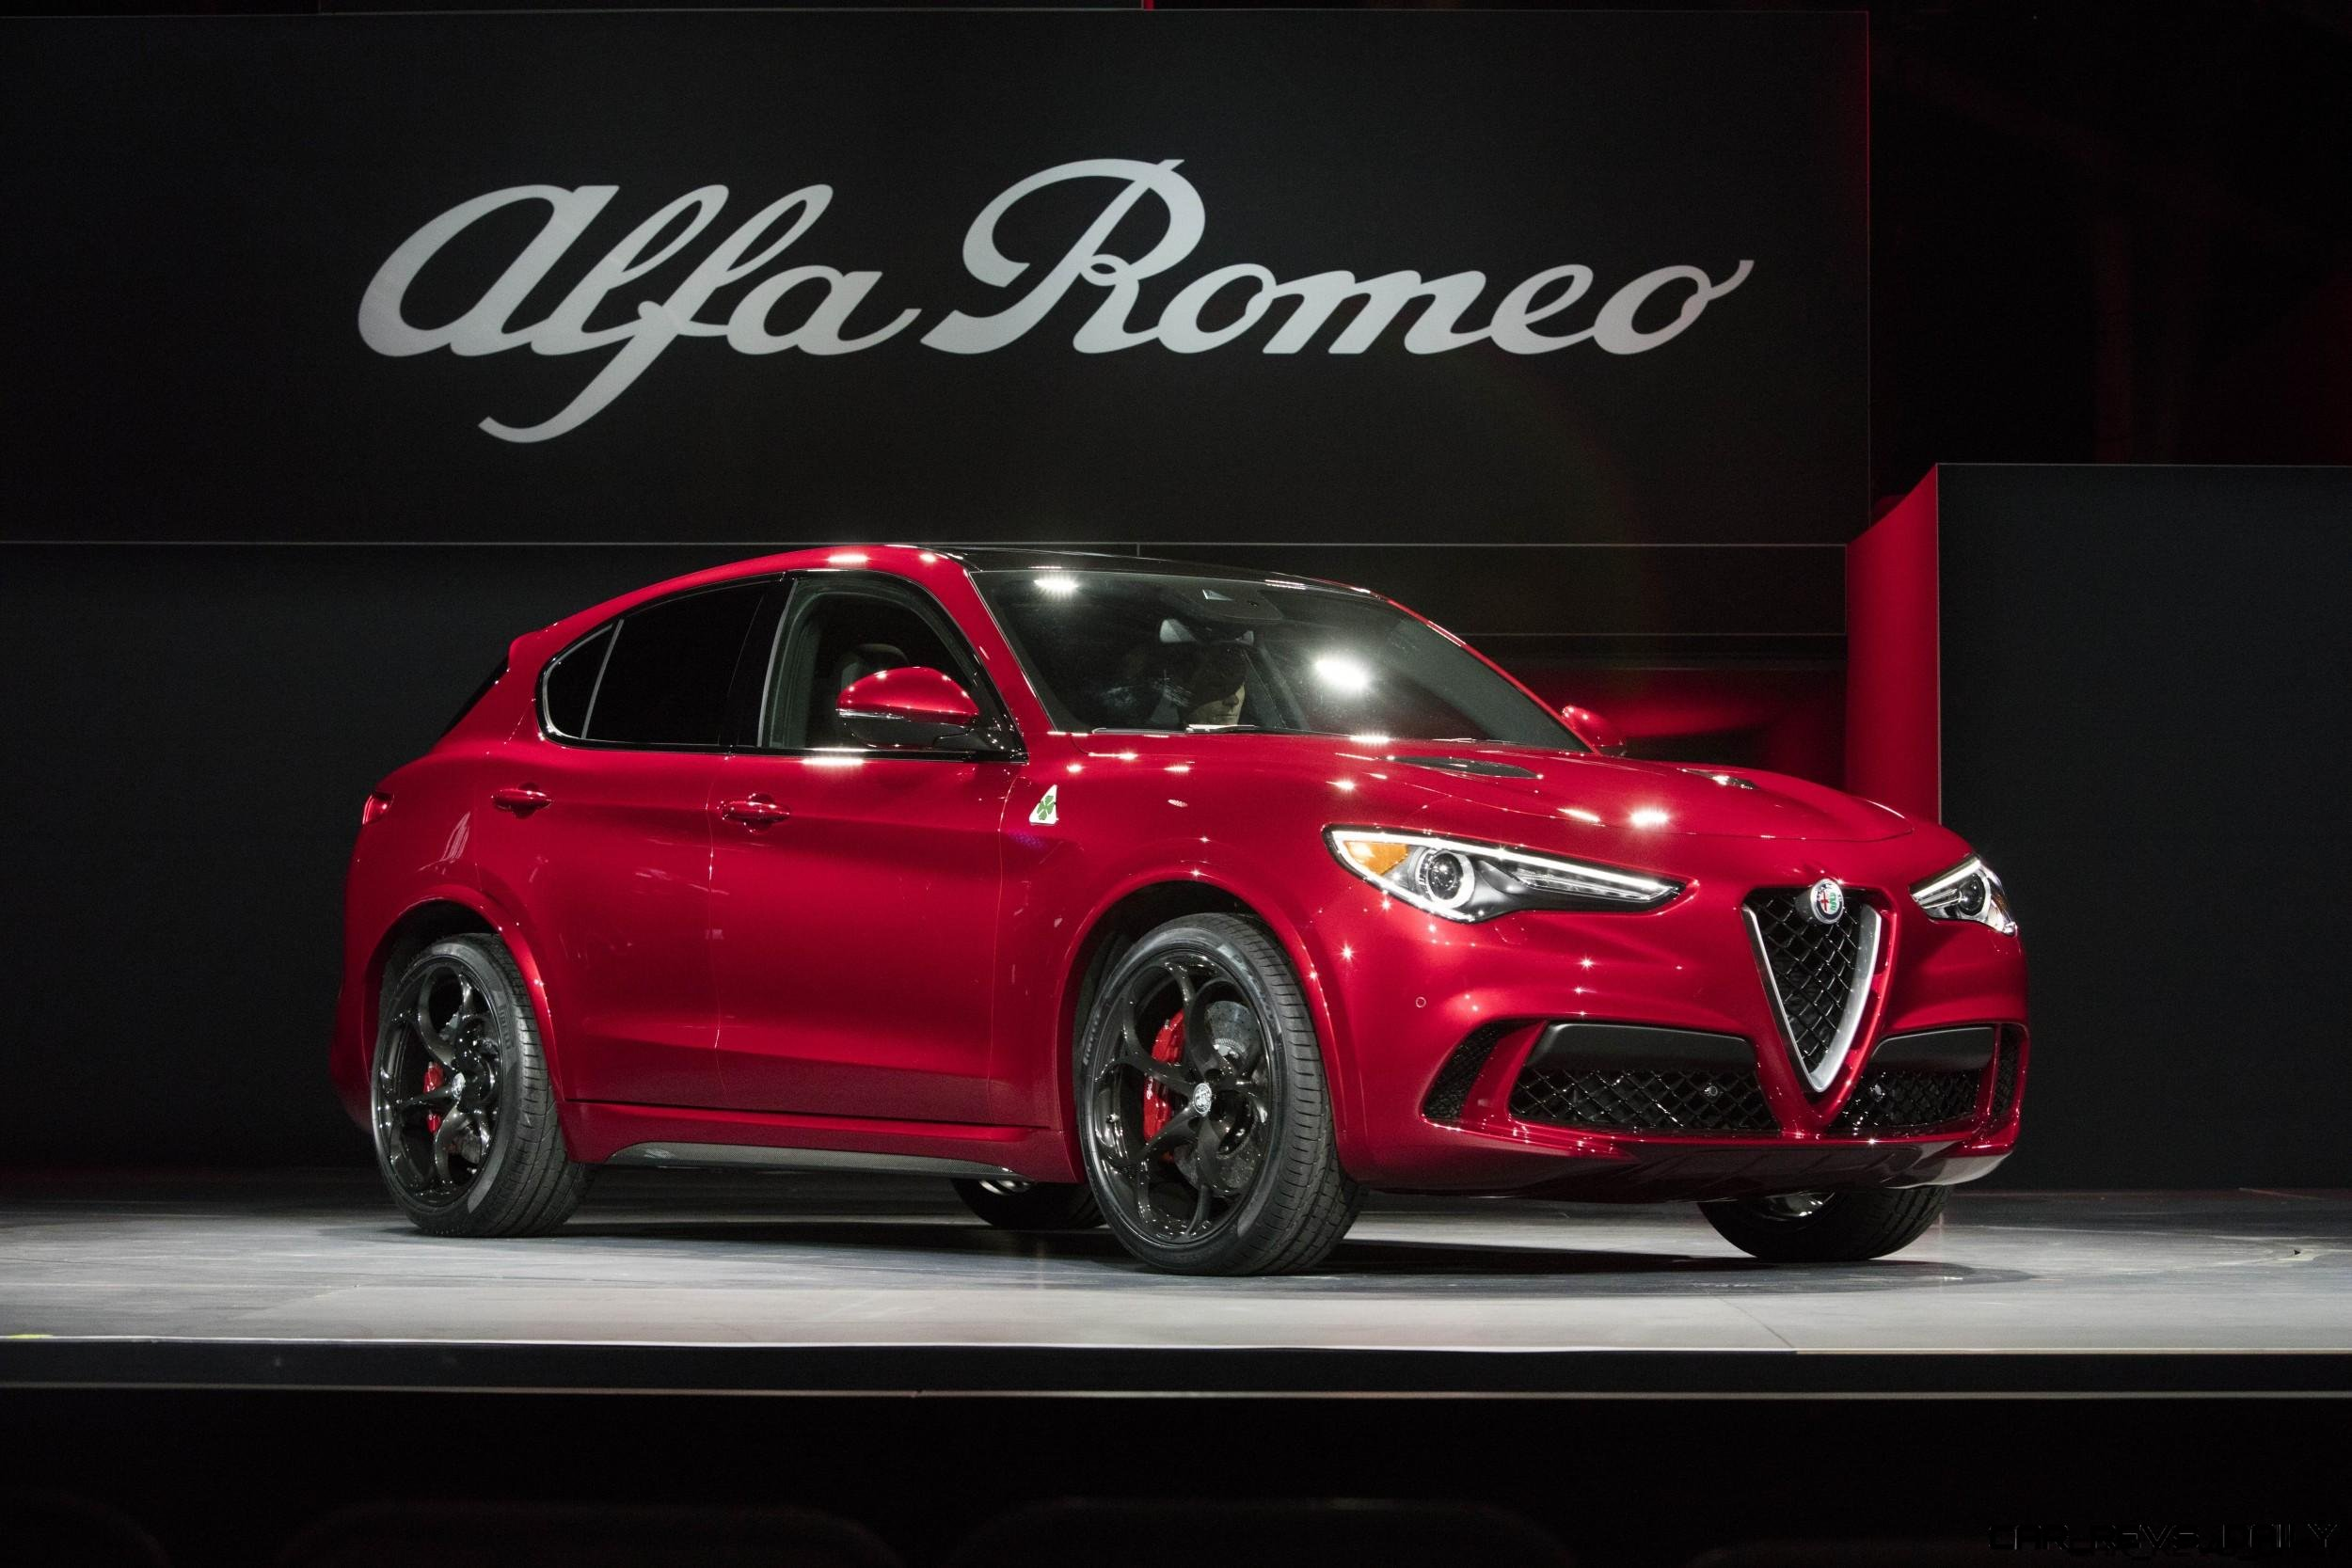 505hp 39s 2018 Alfa Romeo Stelvio High Performance Suv Wows La Rear Axle